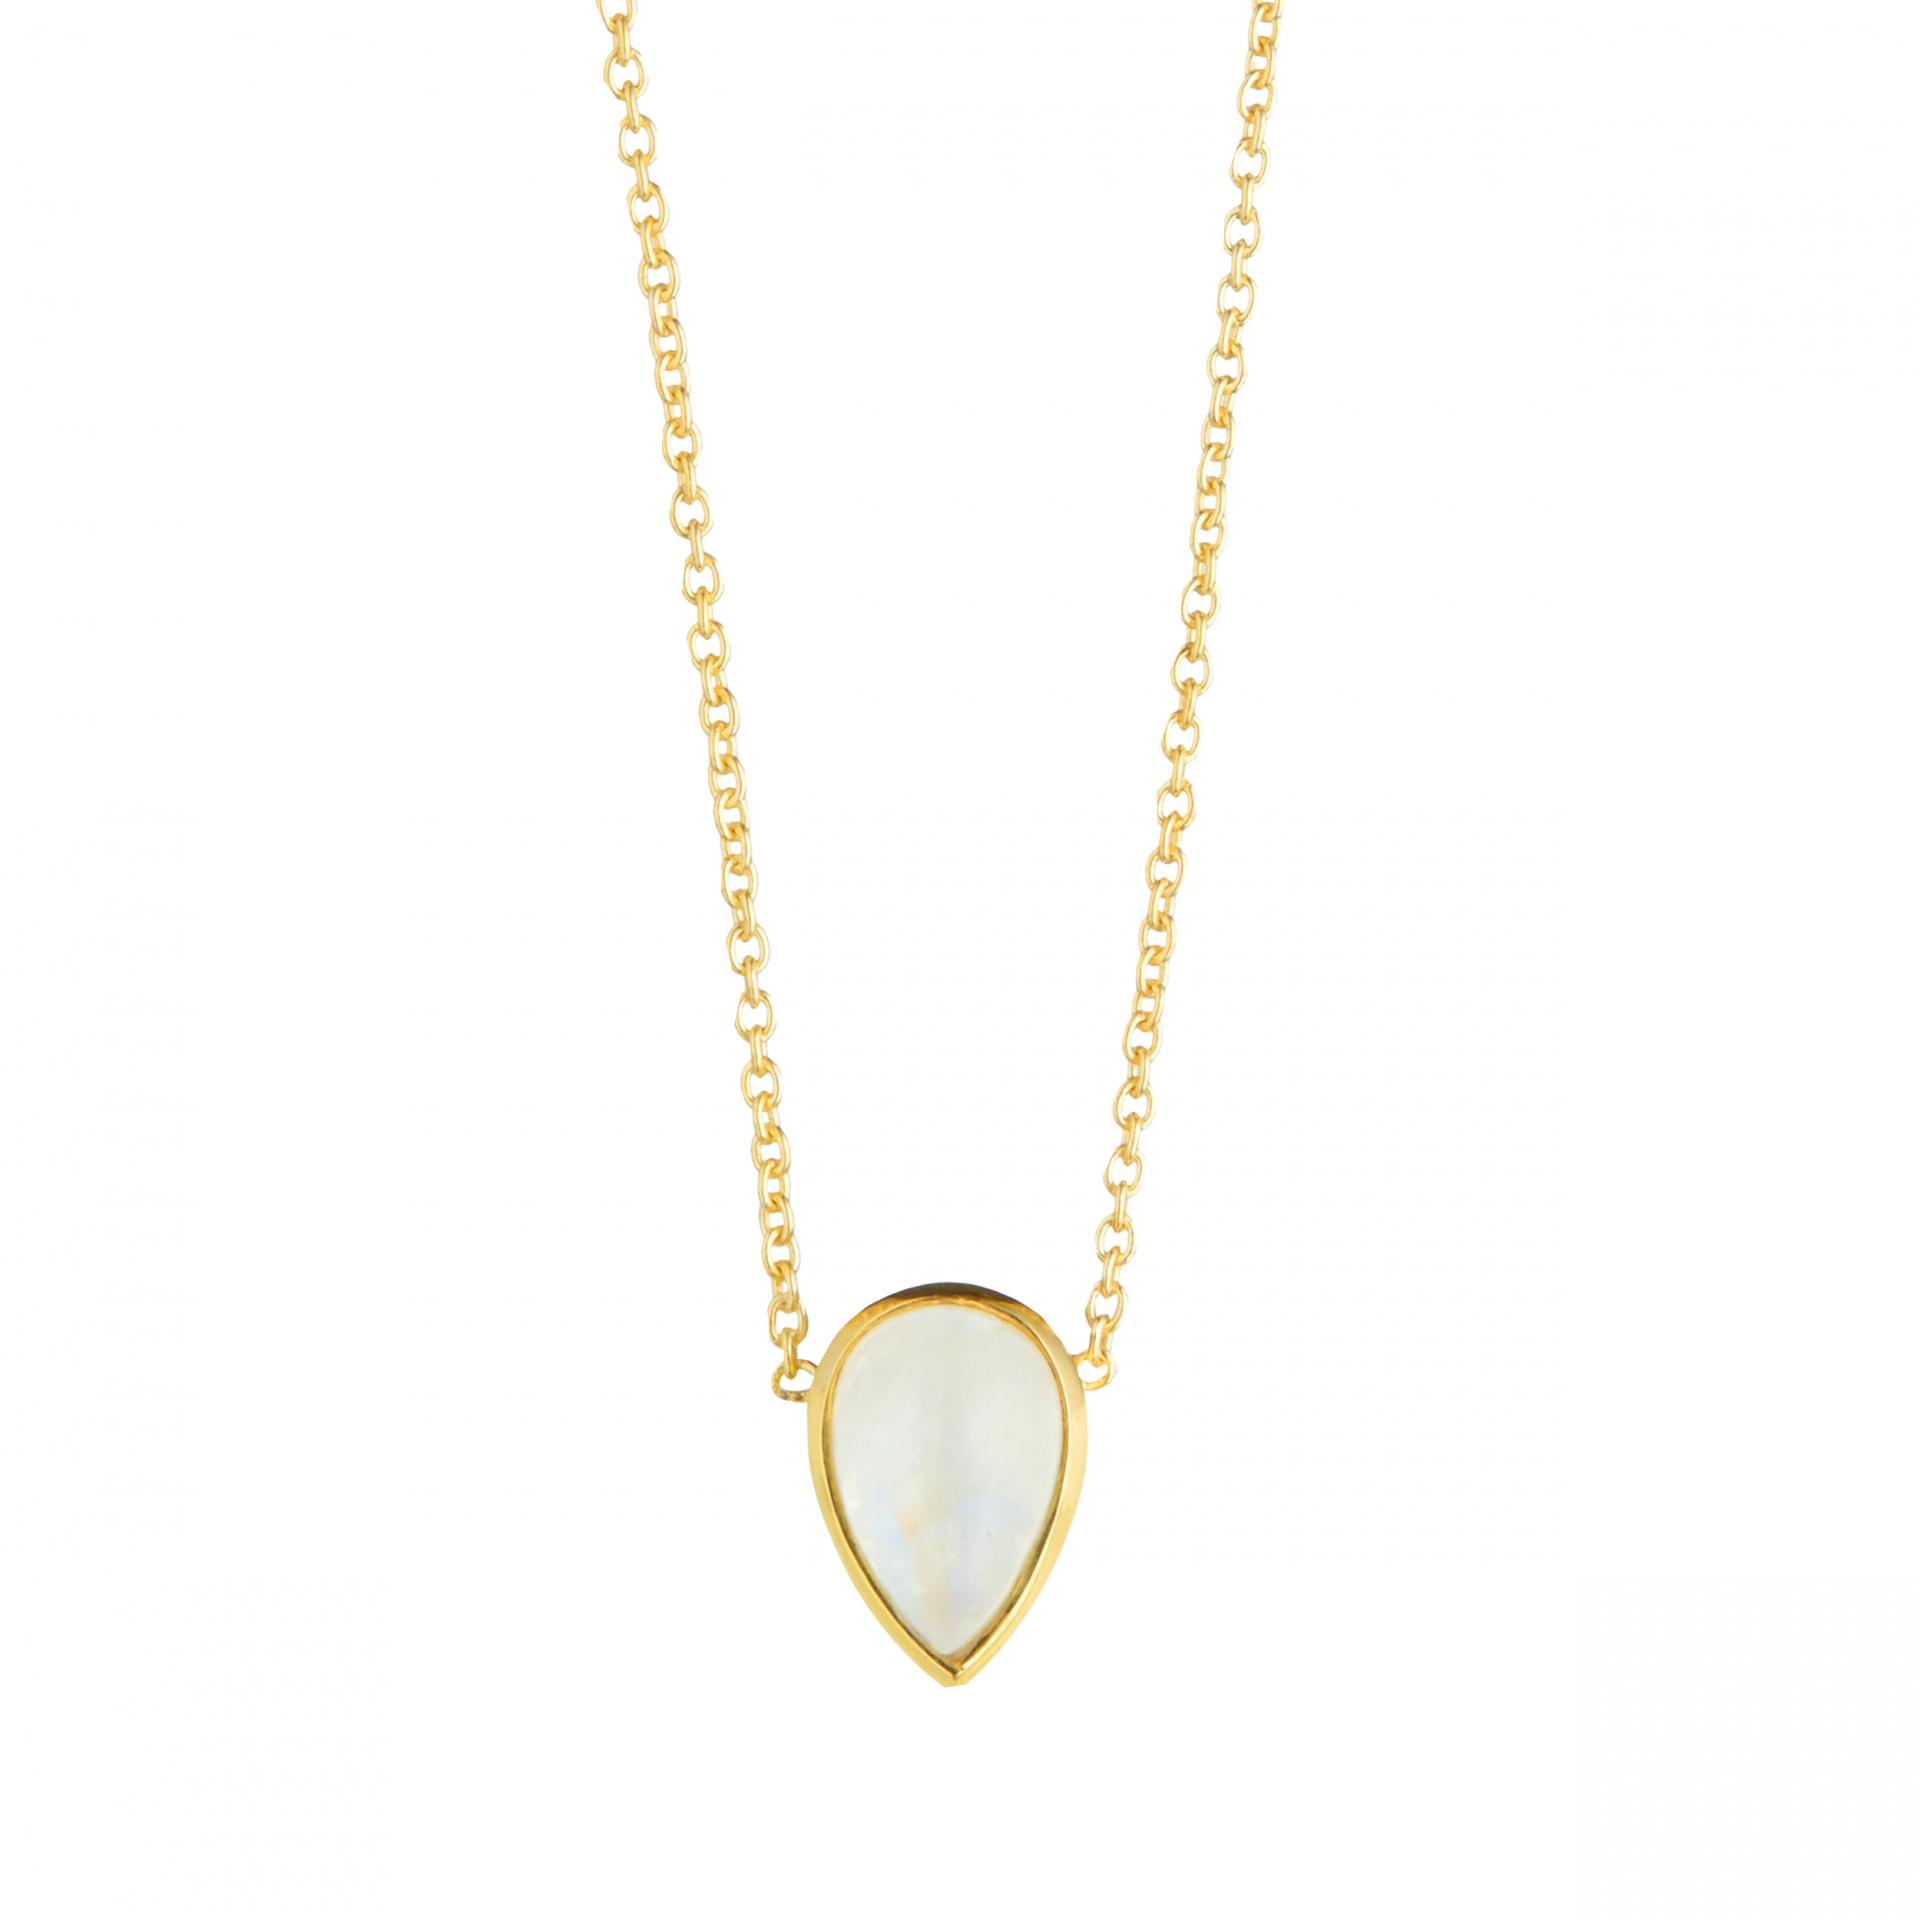 Juvi Designs Seadrop Pendant in Gold Vermeil and Moonstone